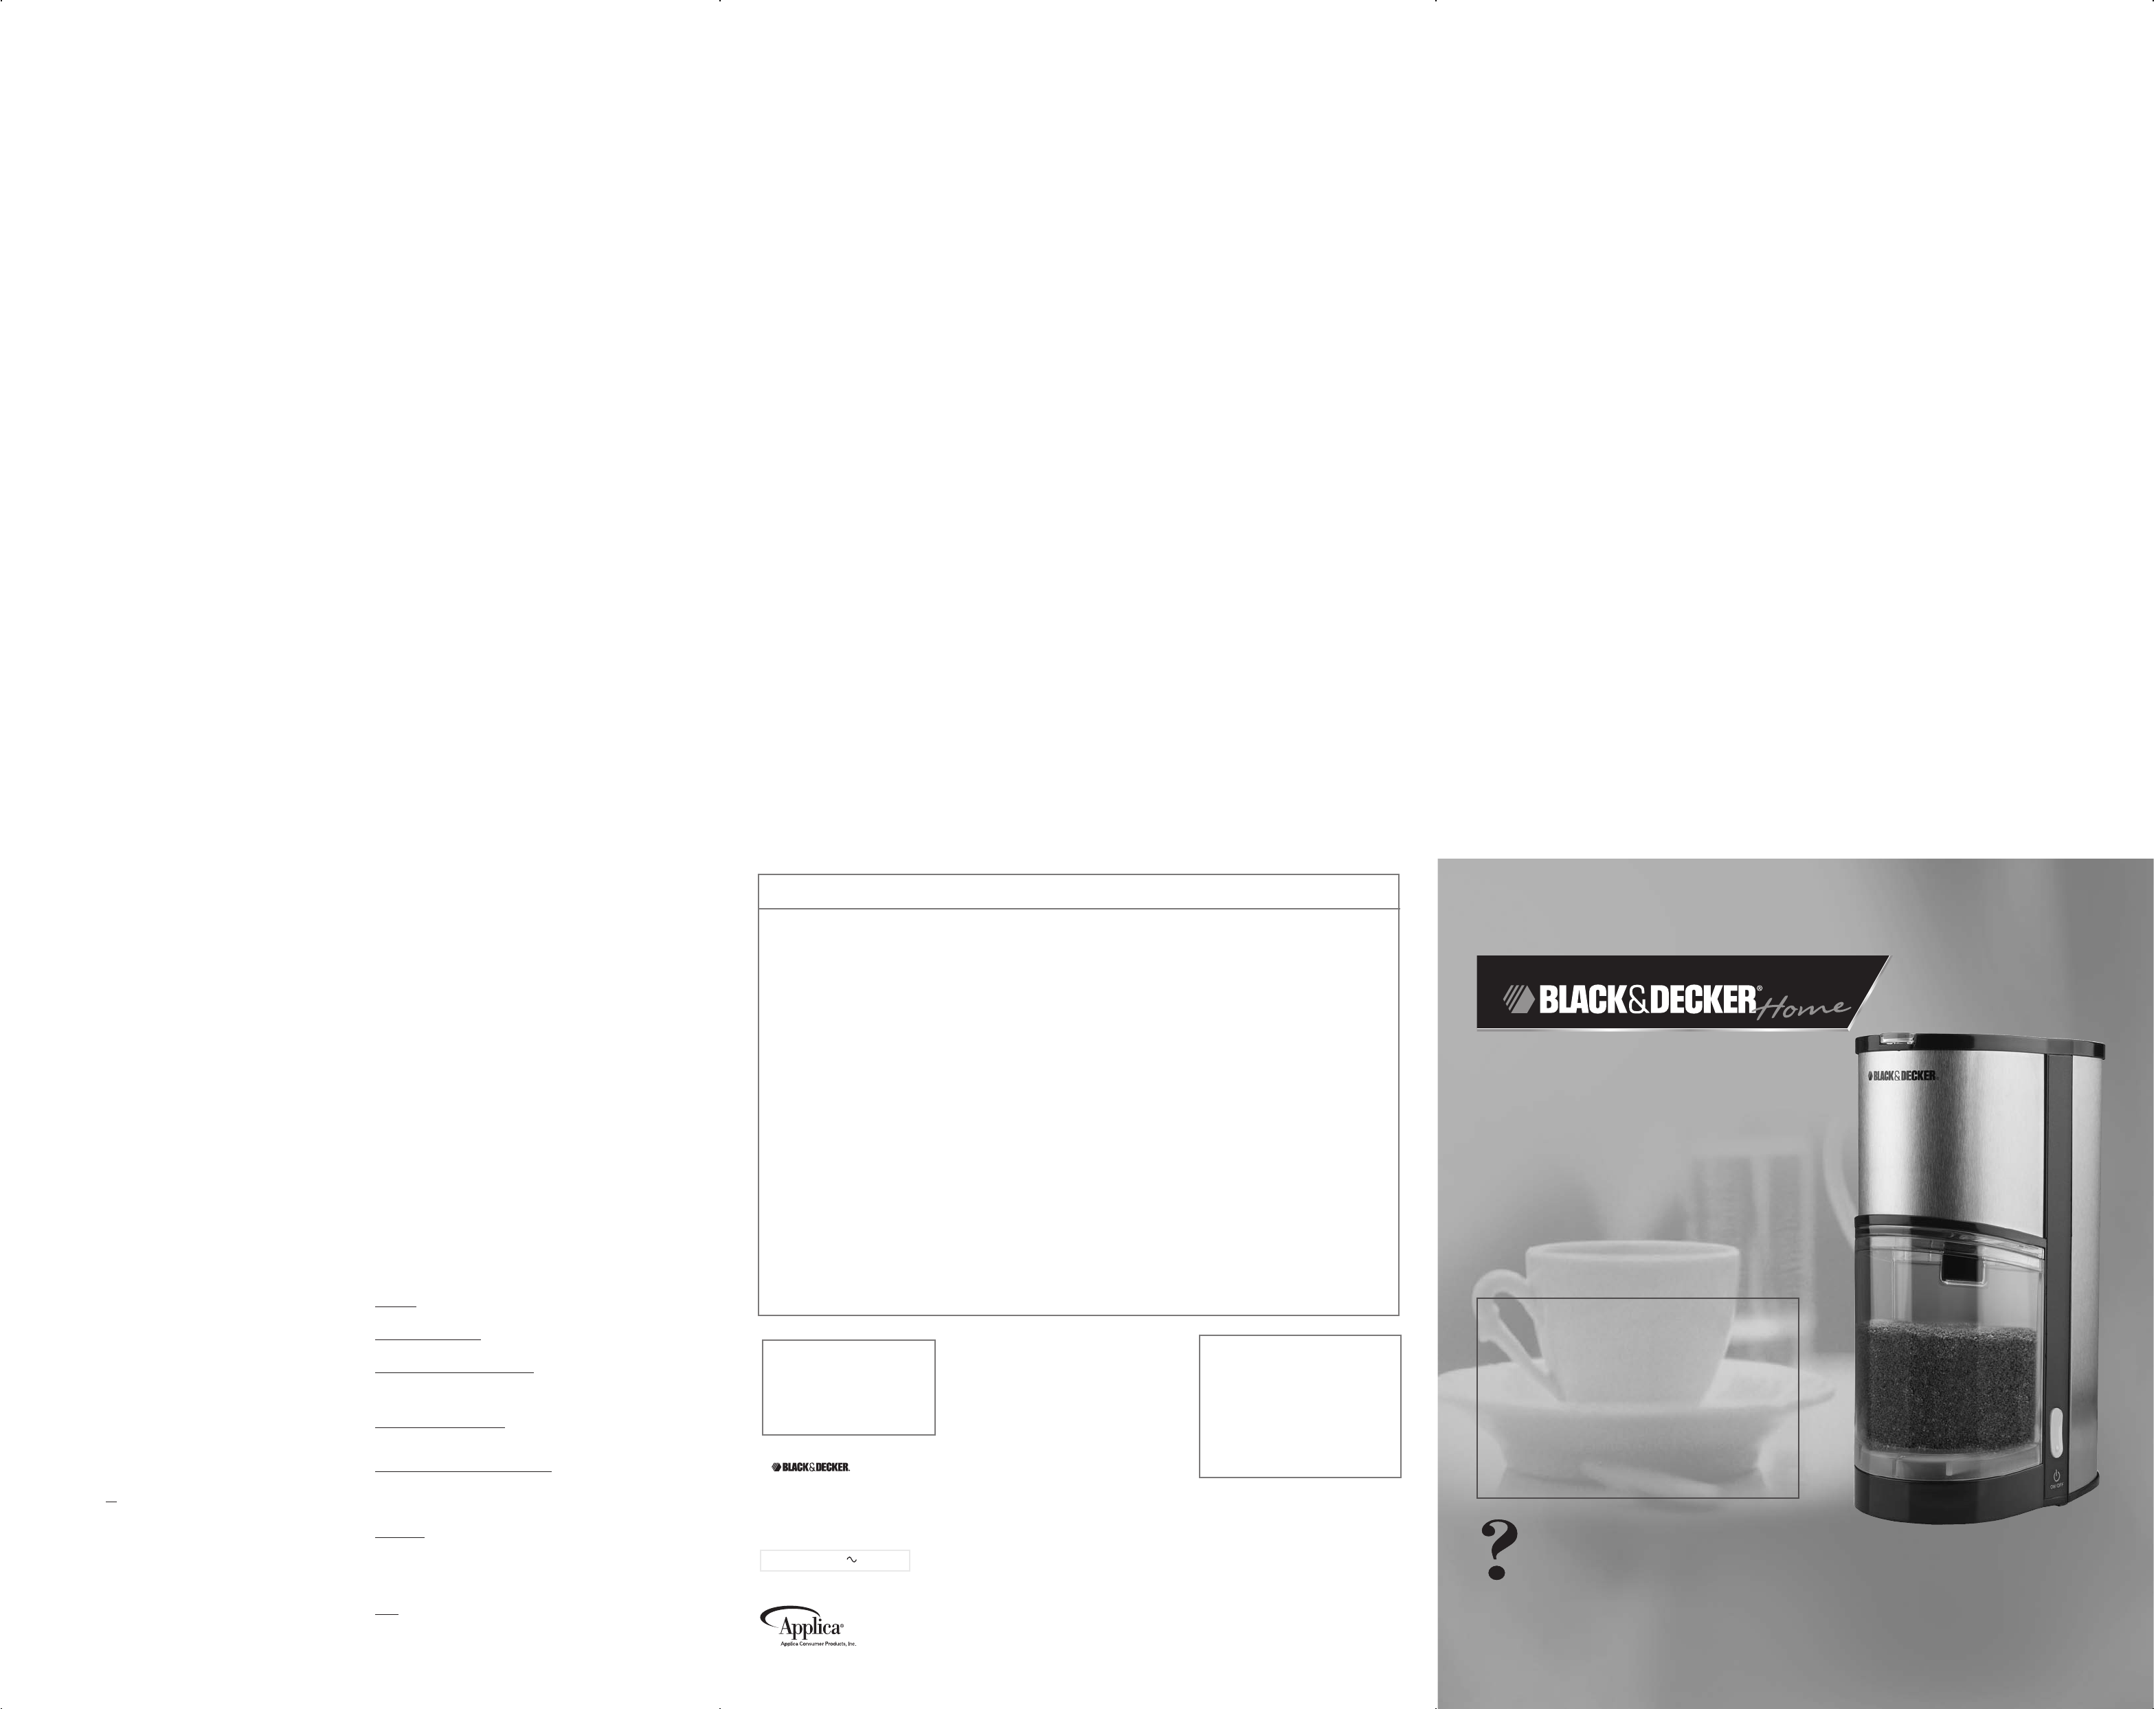 Black And Decker Coffee Maker Cleaning Instructions : Black & Decker Coffee Grinder CBM200S User Guide ManualsOnline.com